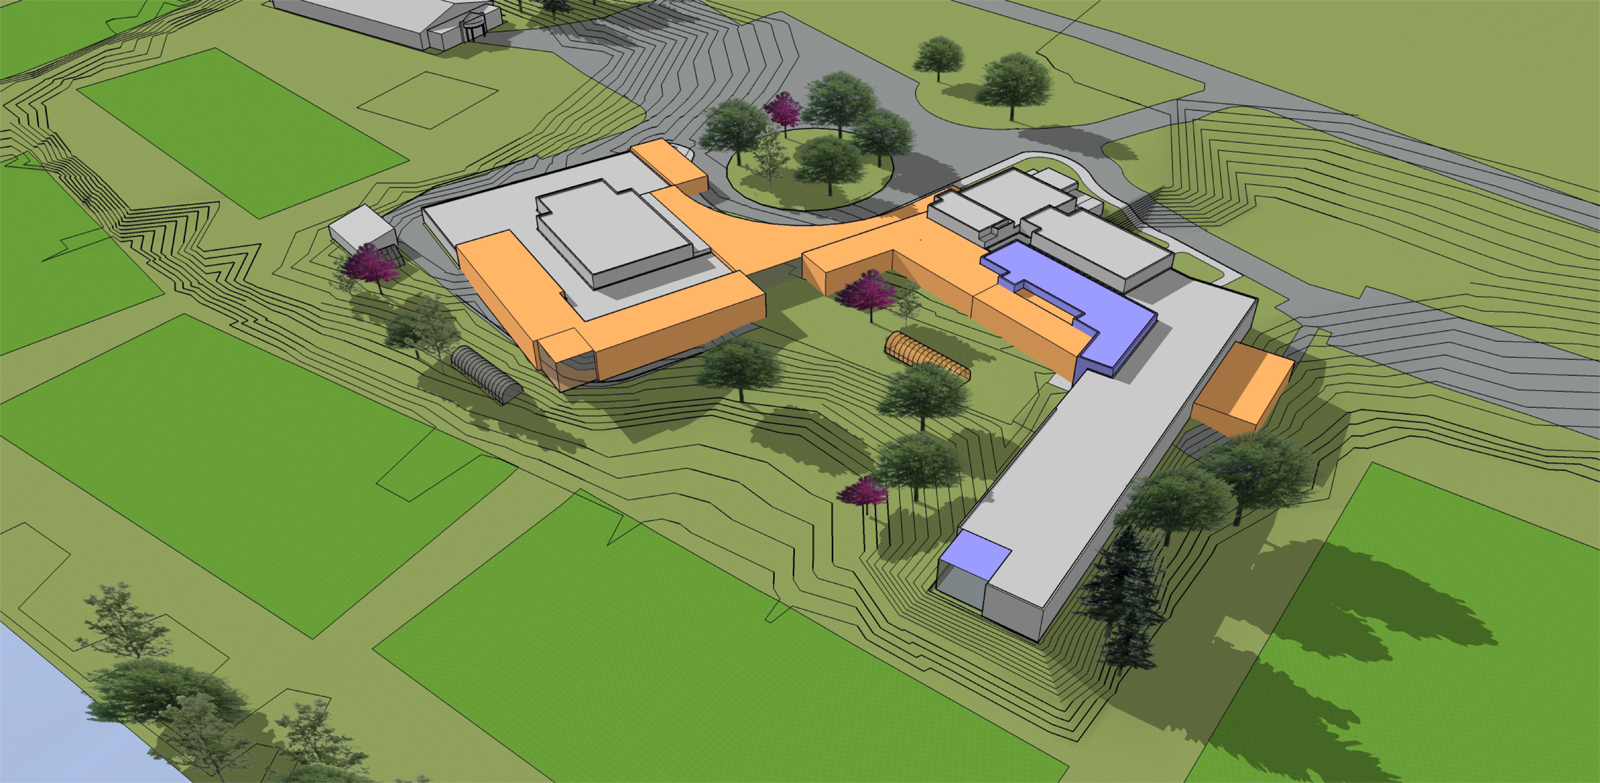 Woodstock-Middle-and-High-School-design-Jack-Rossi-Landscape-architect-vermont